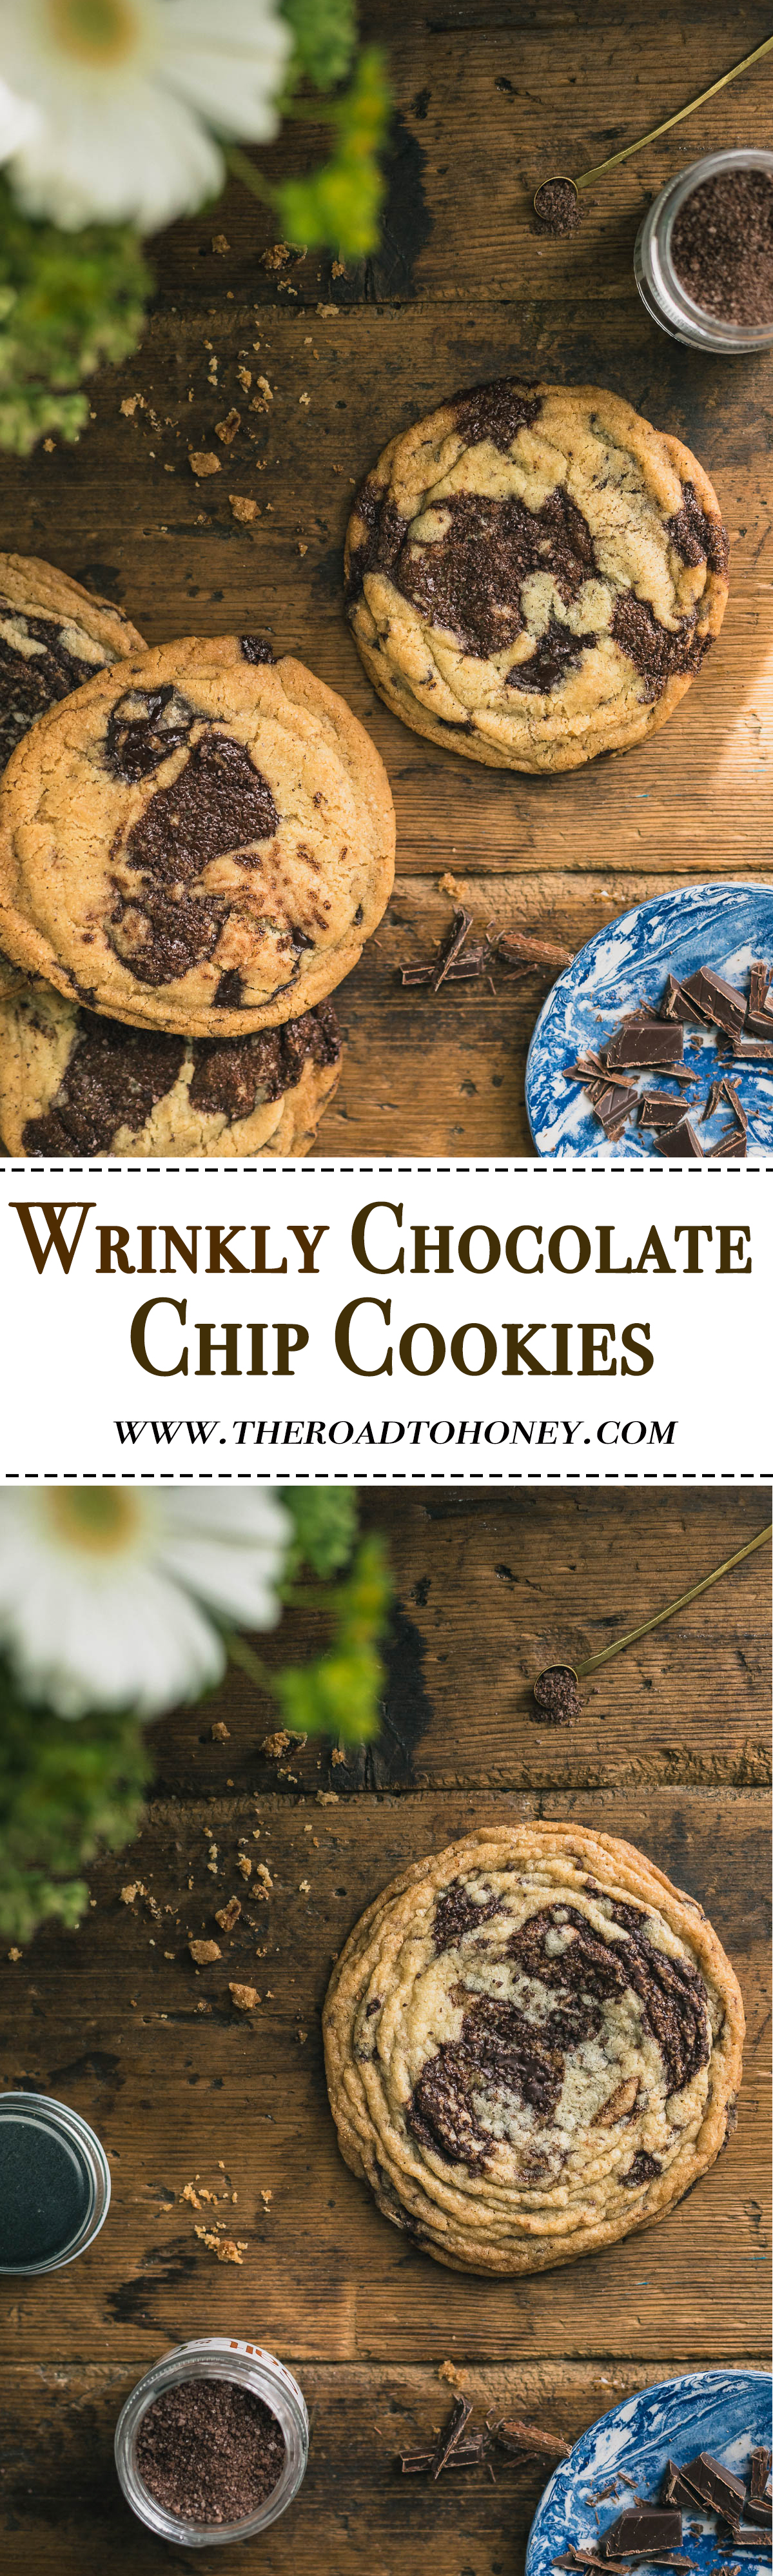 Best Ever Chocolate Chip Cookies (wrinkle edition)- These best ever Chocolate Chip Cookies use a special baking technique to give them a unique wrinkly appearance that is sure to have everyone stopping in their tracks.  A true American classic with a twist.